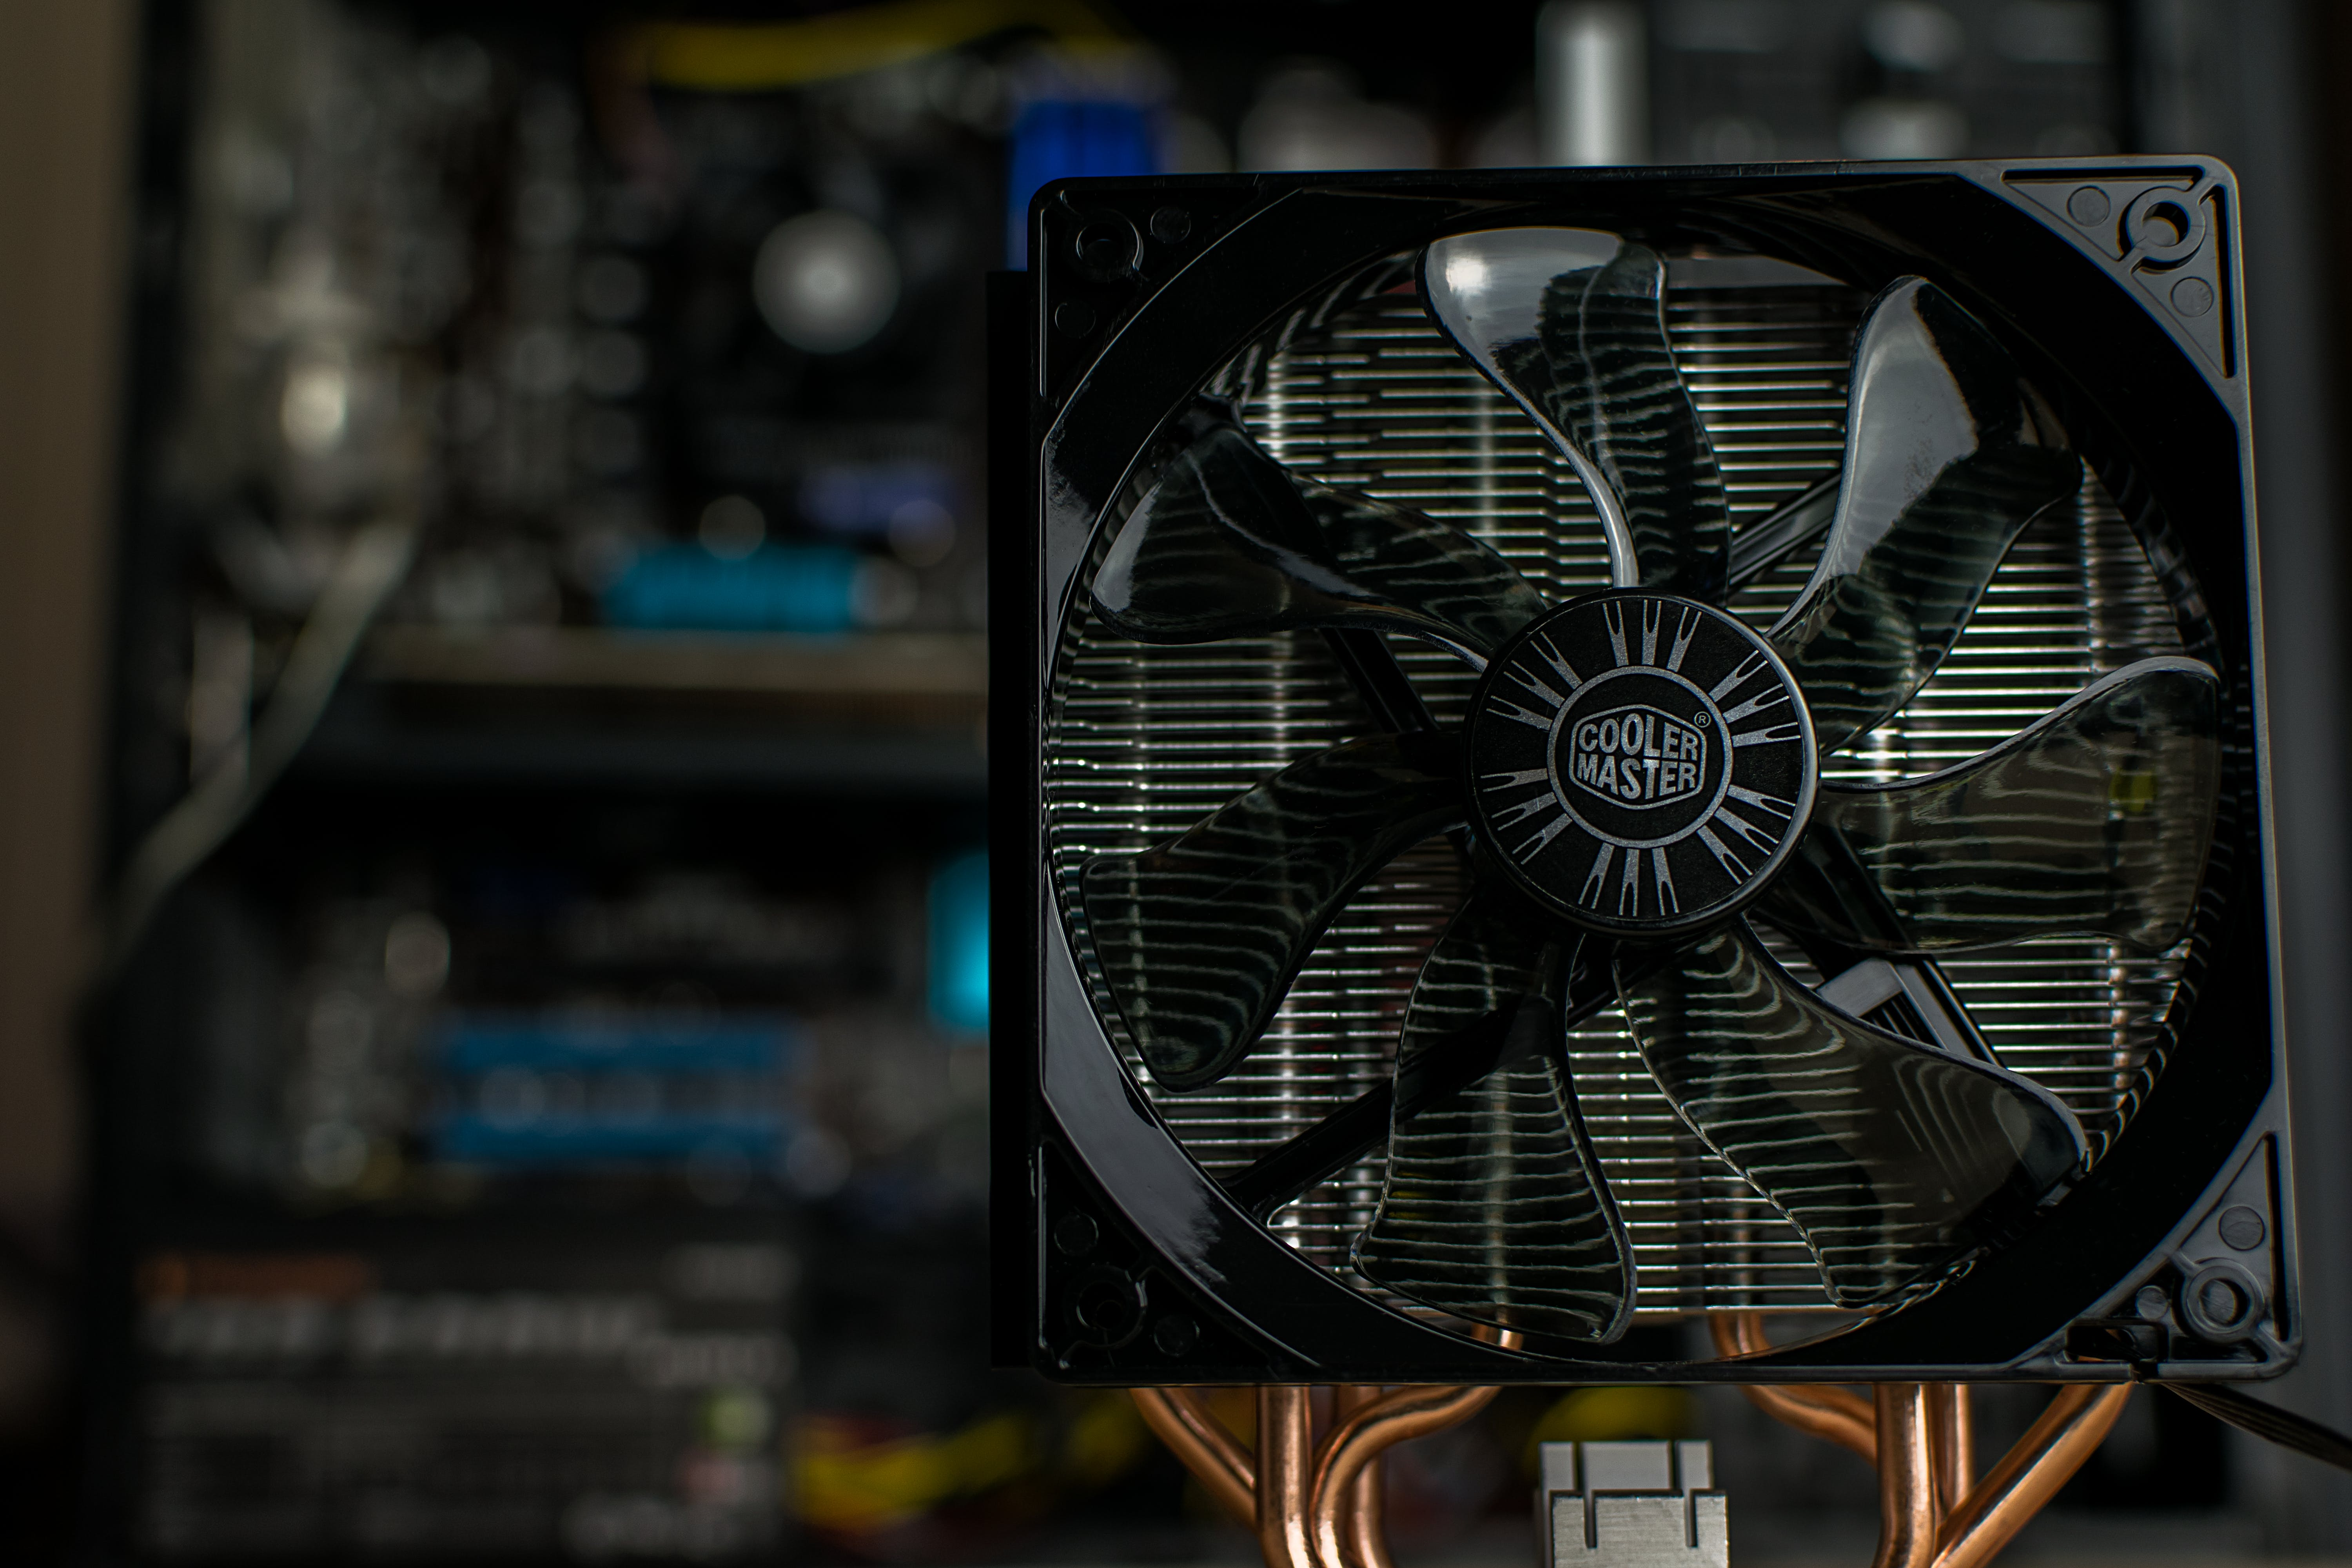 Free stock photo of cooler master, cpu, fan, heatsink